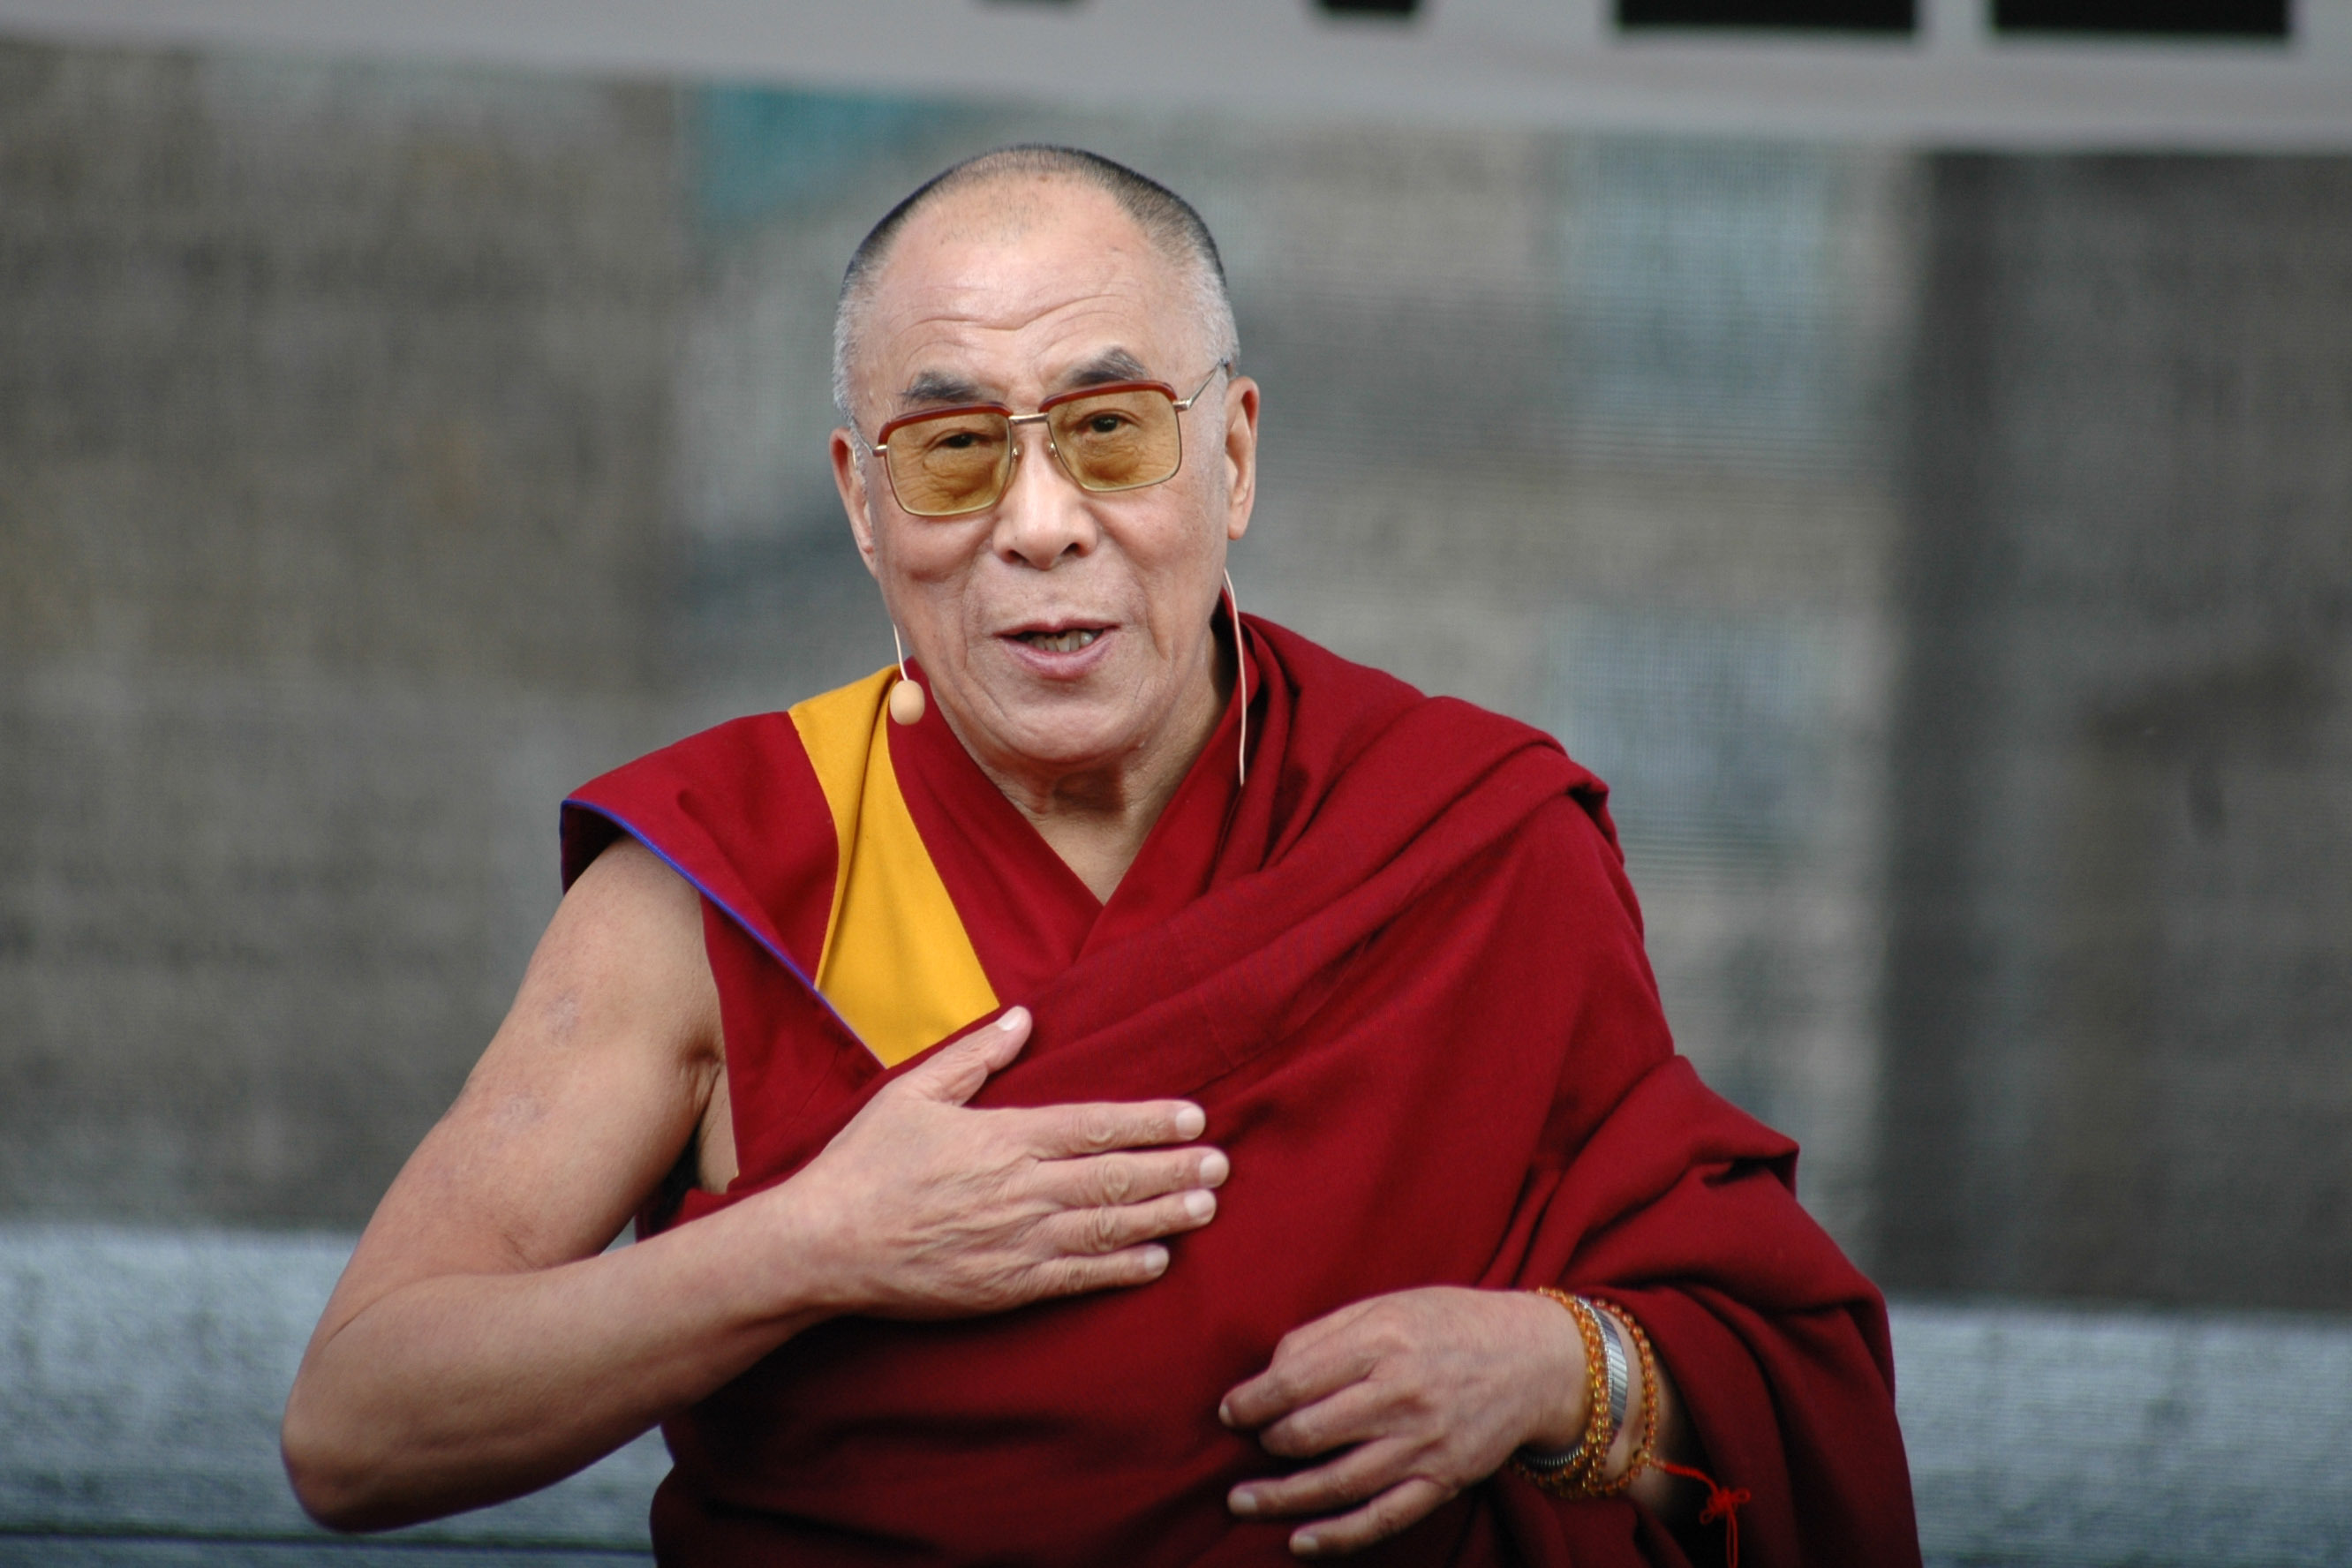 His Holiness the Dalai Lama (Photo courtesy/Photo: 360b)